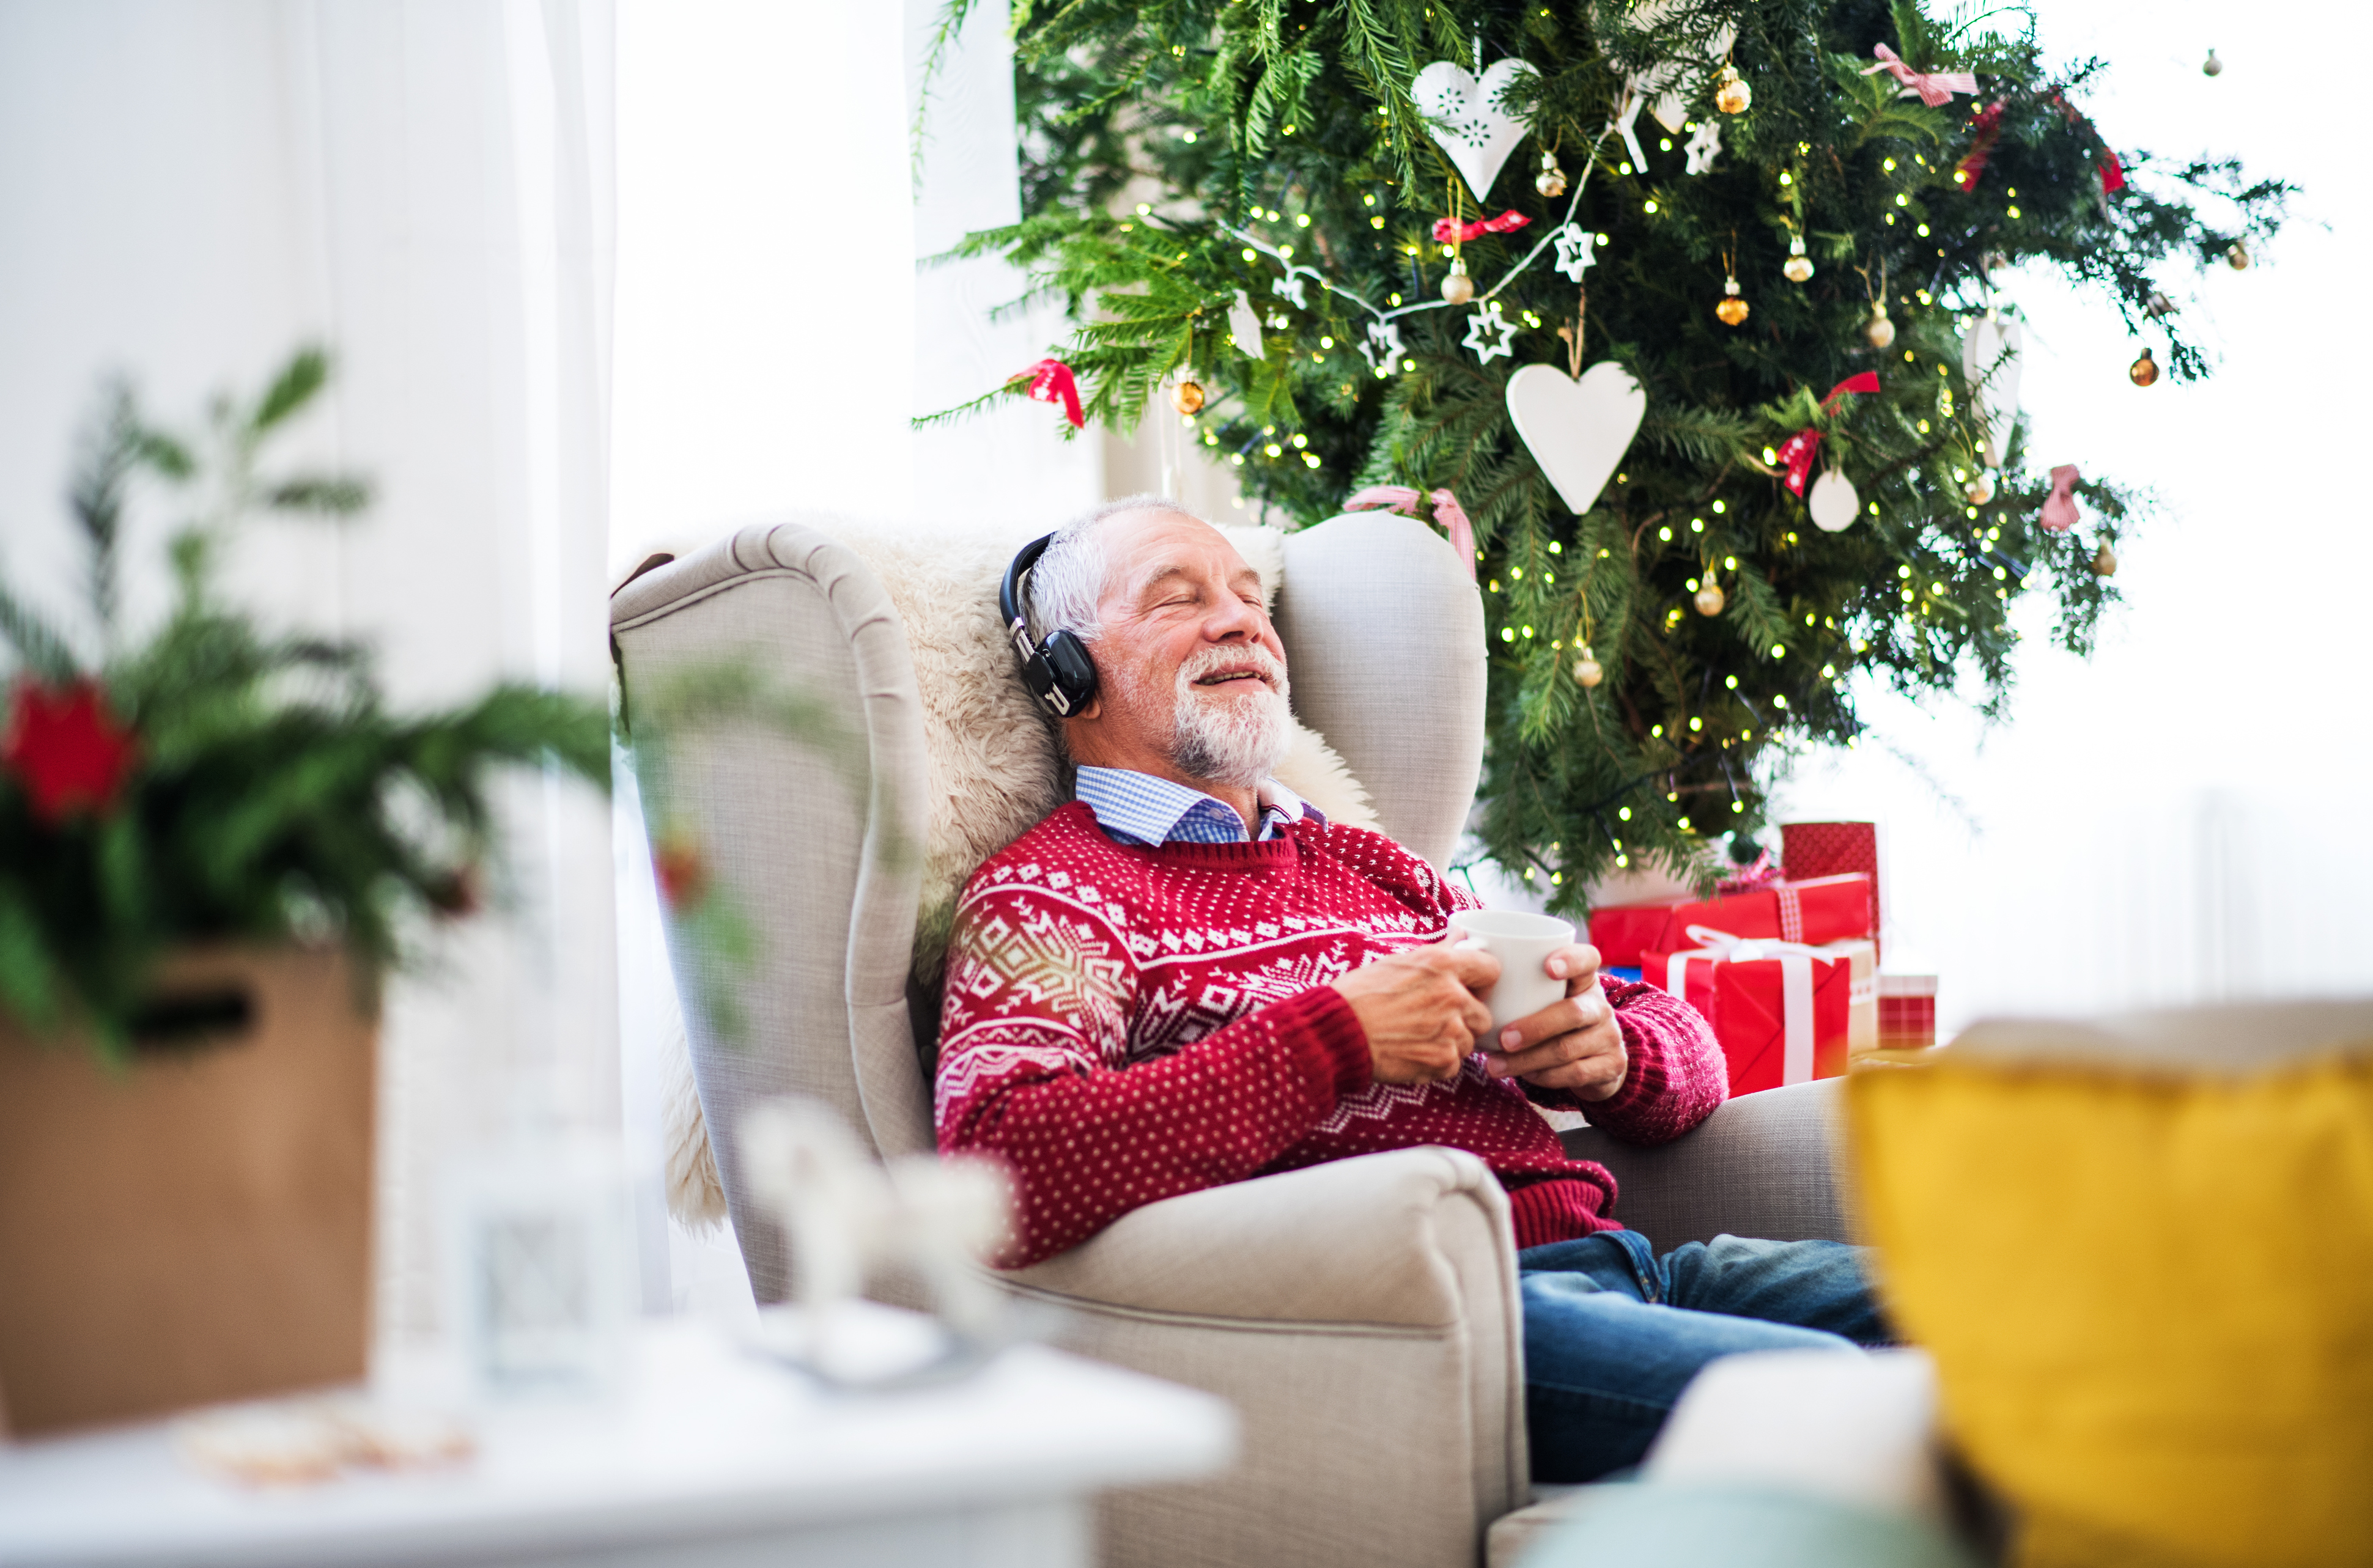 Holiday gifts for a senior with dementia can include music to help stimulate the mind may include music albums that they enjoyed throughout their life.